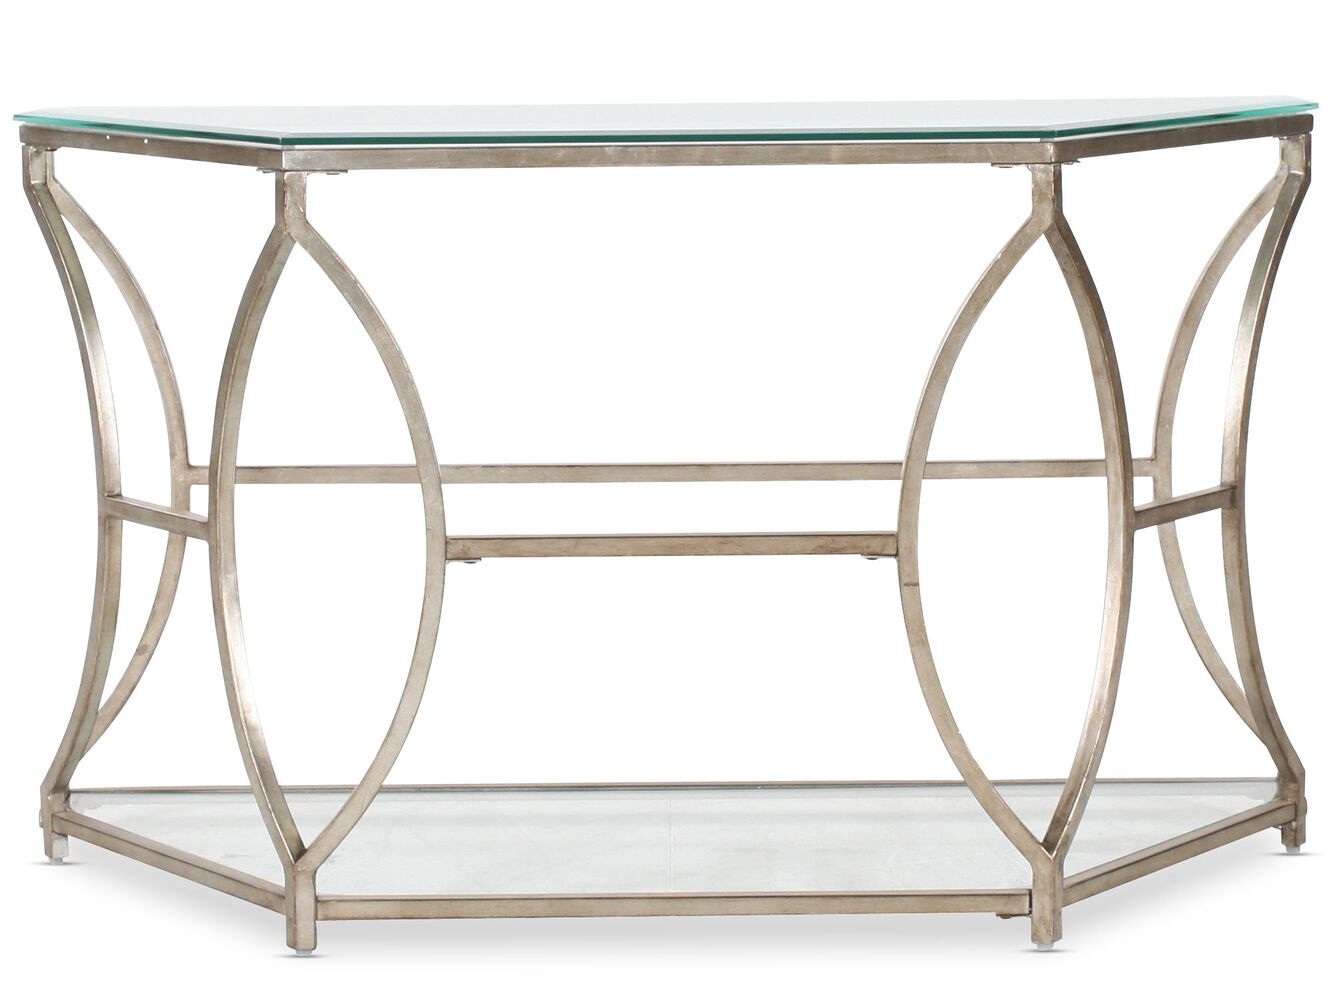 Curved base traditional sofa table in silver mathis brothers curved base traditional sofa table in antique gold geotapseo Gallery